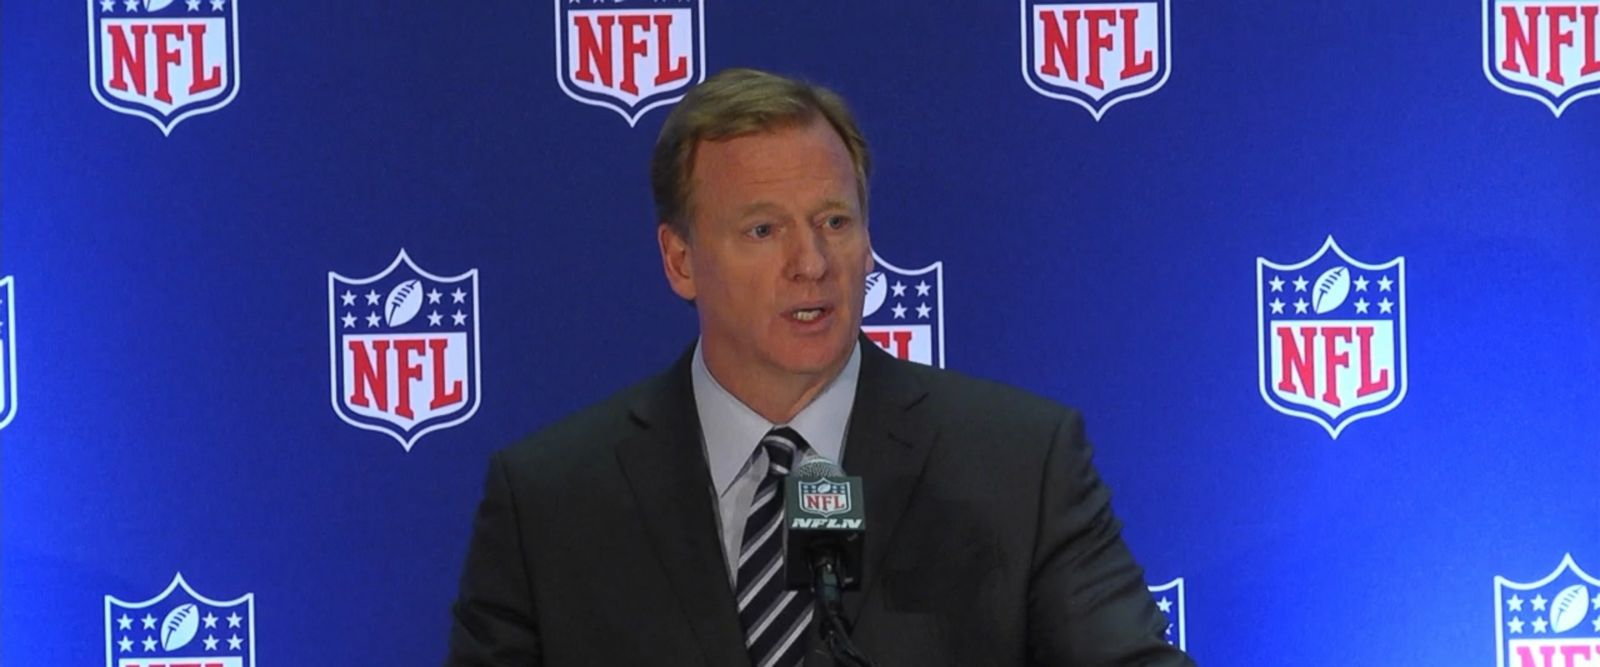 "Commissioner Roger Goodell and several owners said Tuesday at the league's fall meetings that altering the language from ""should stand"" to ""must stand"" was not discussed."